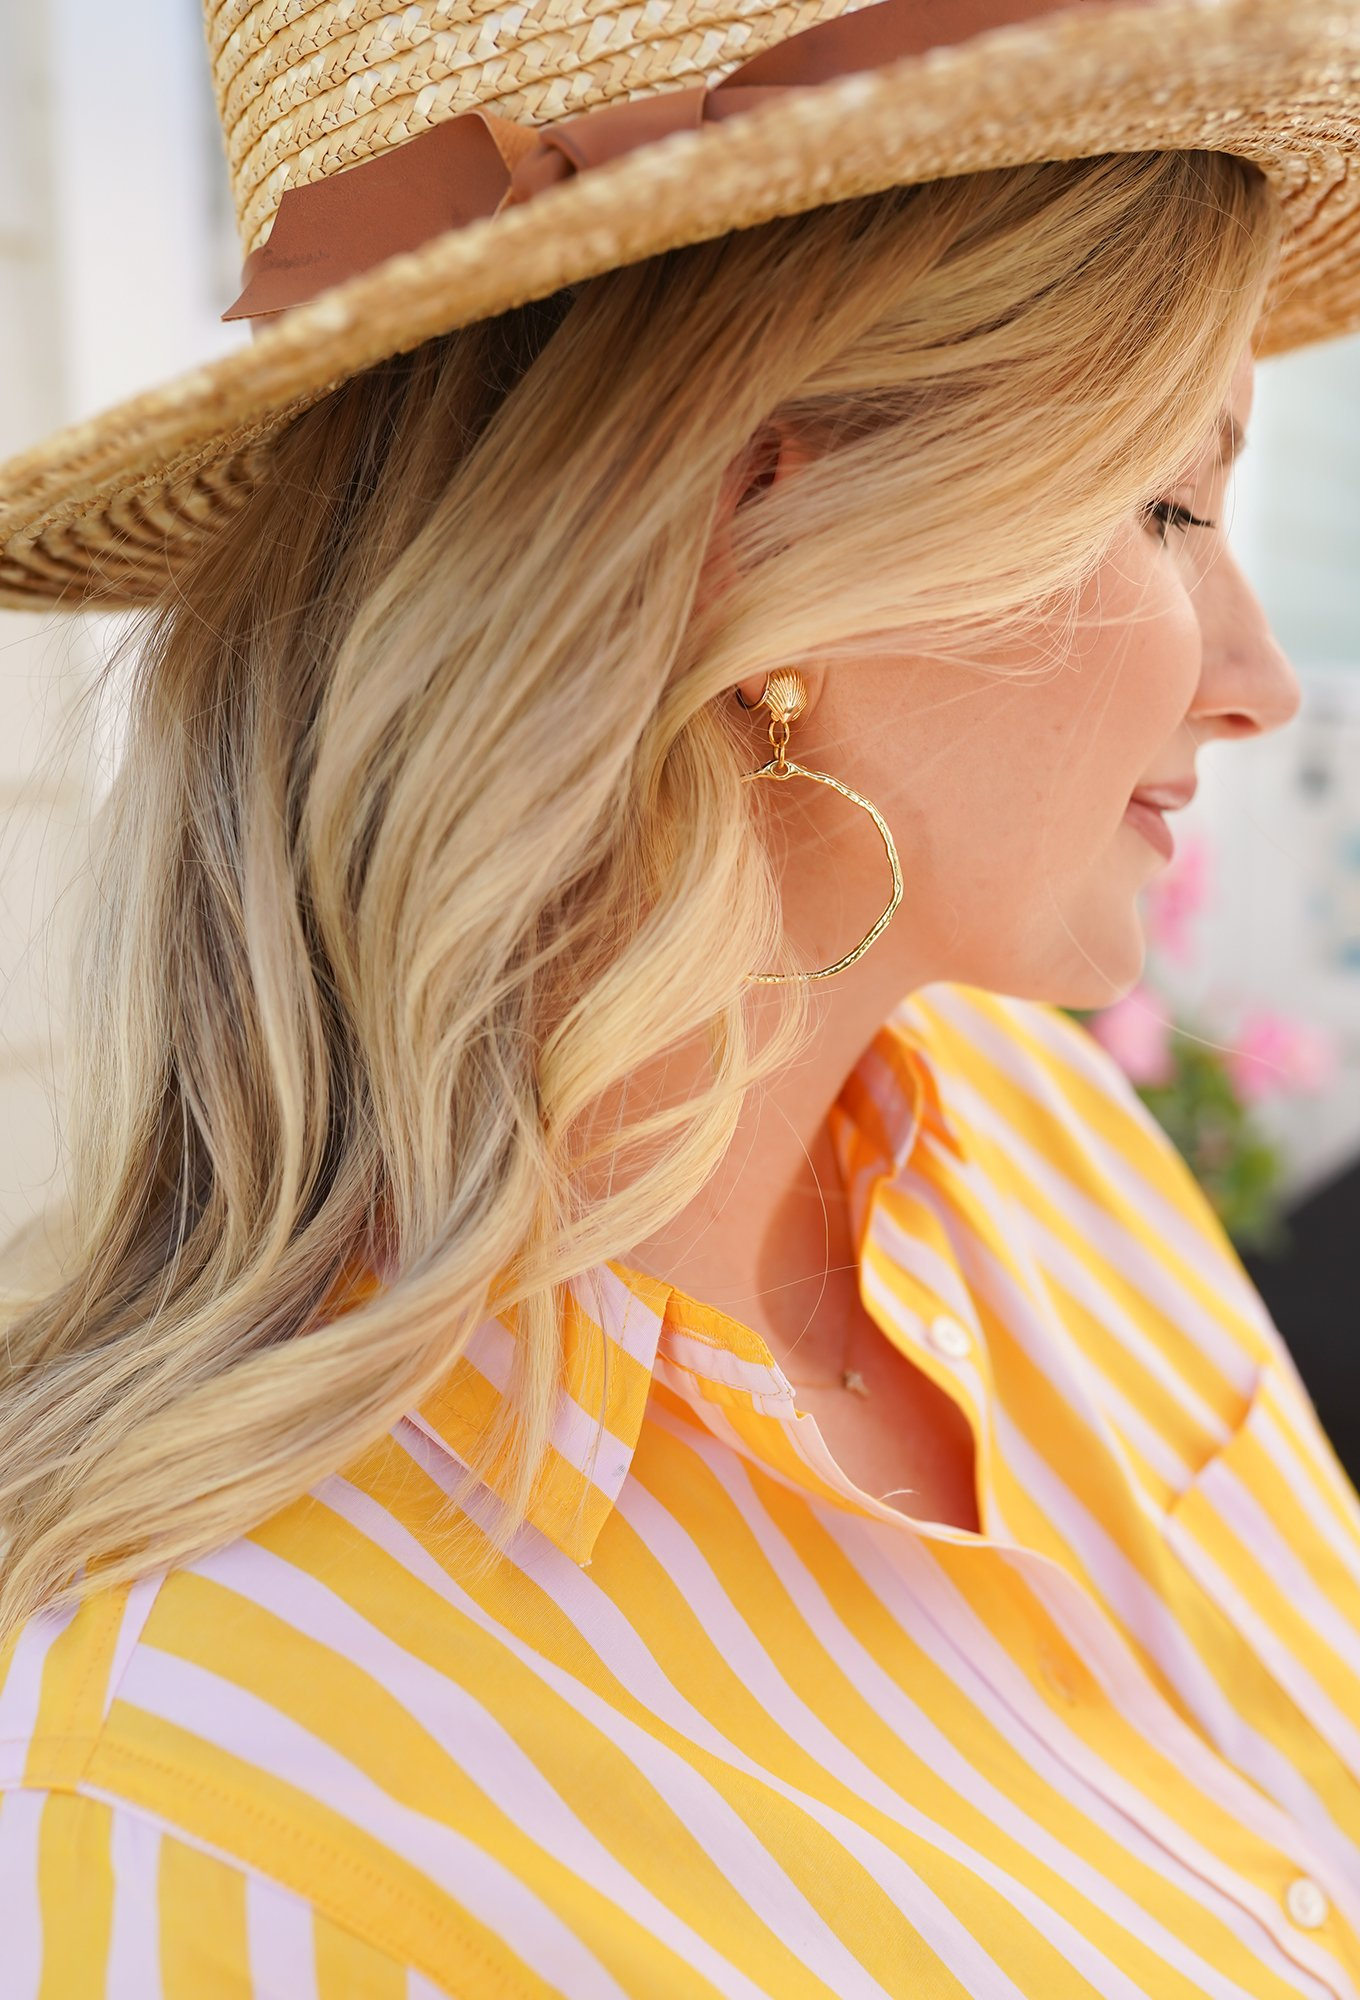 Ashley Brooke wearing straw hat with yellow striped dress